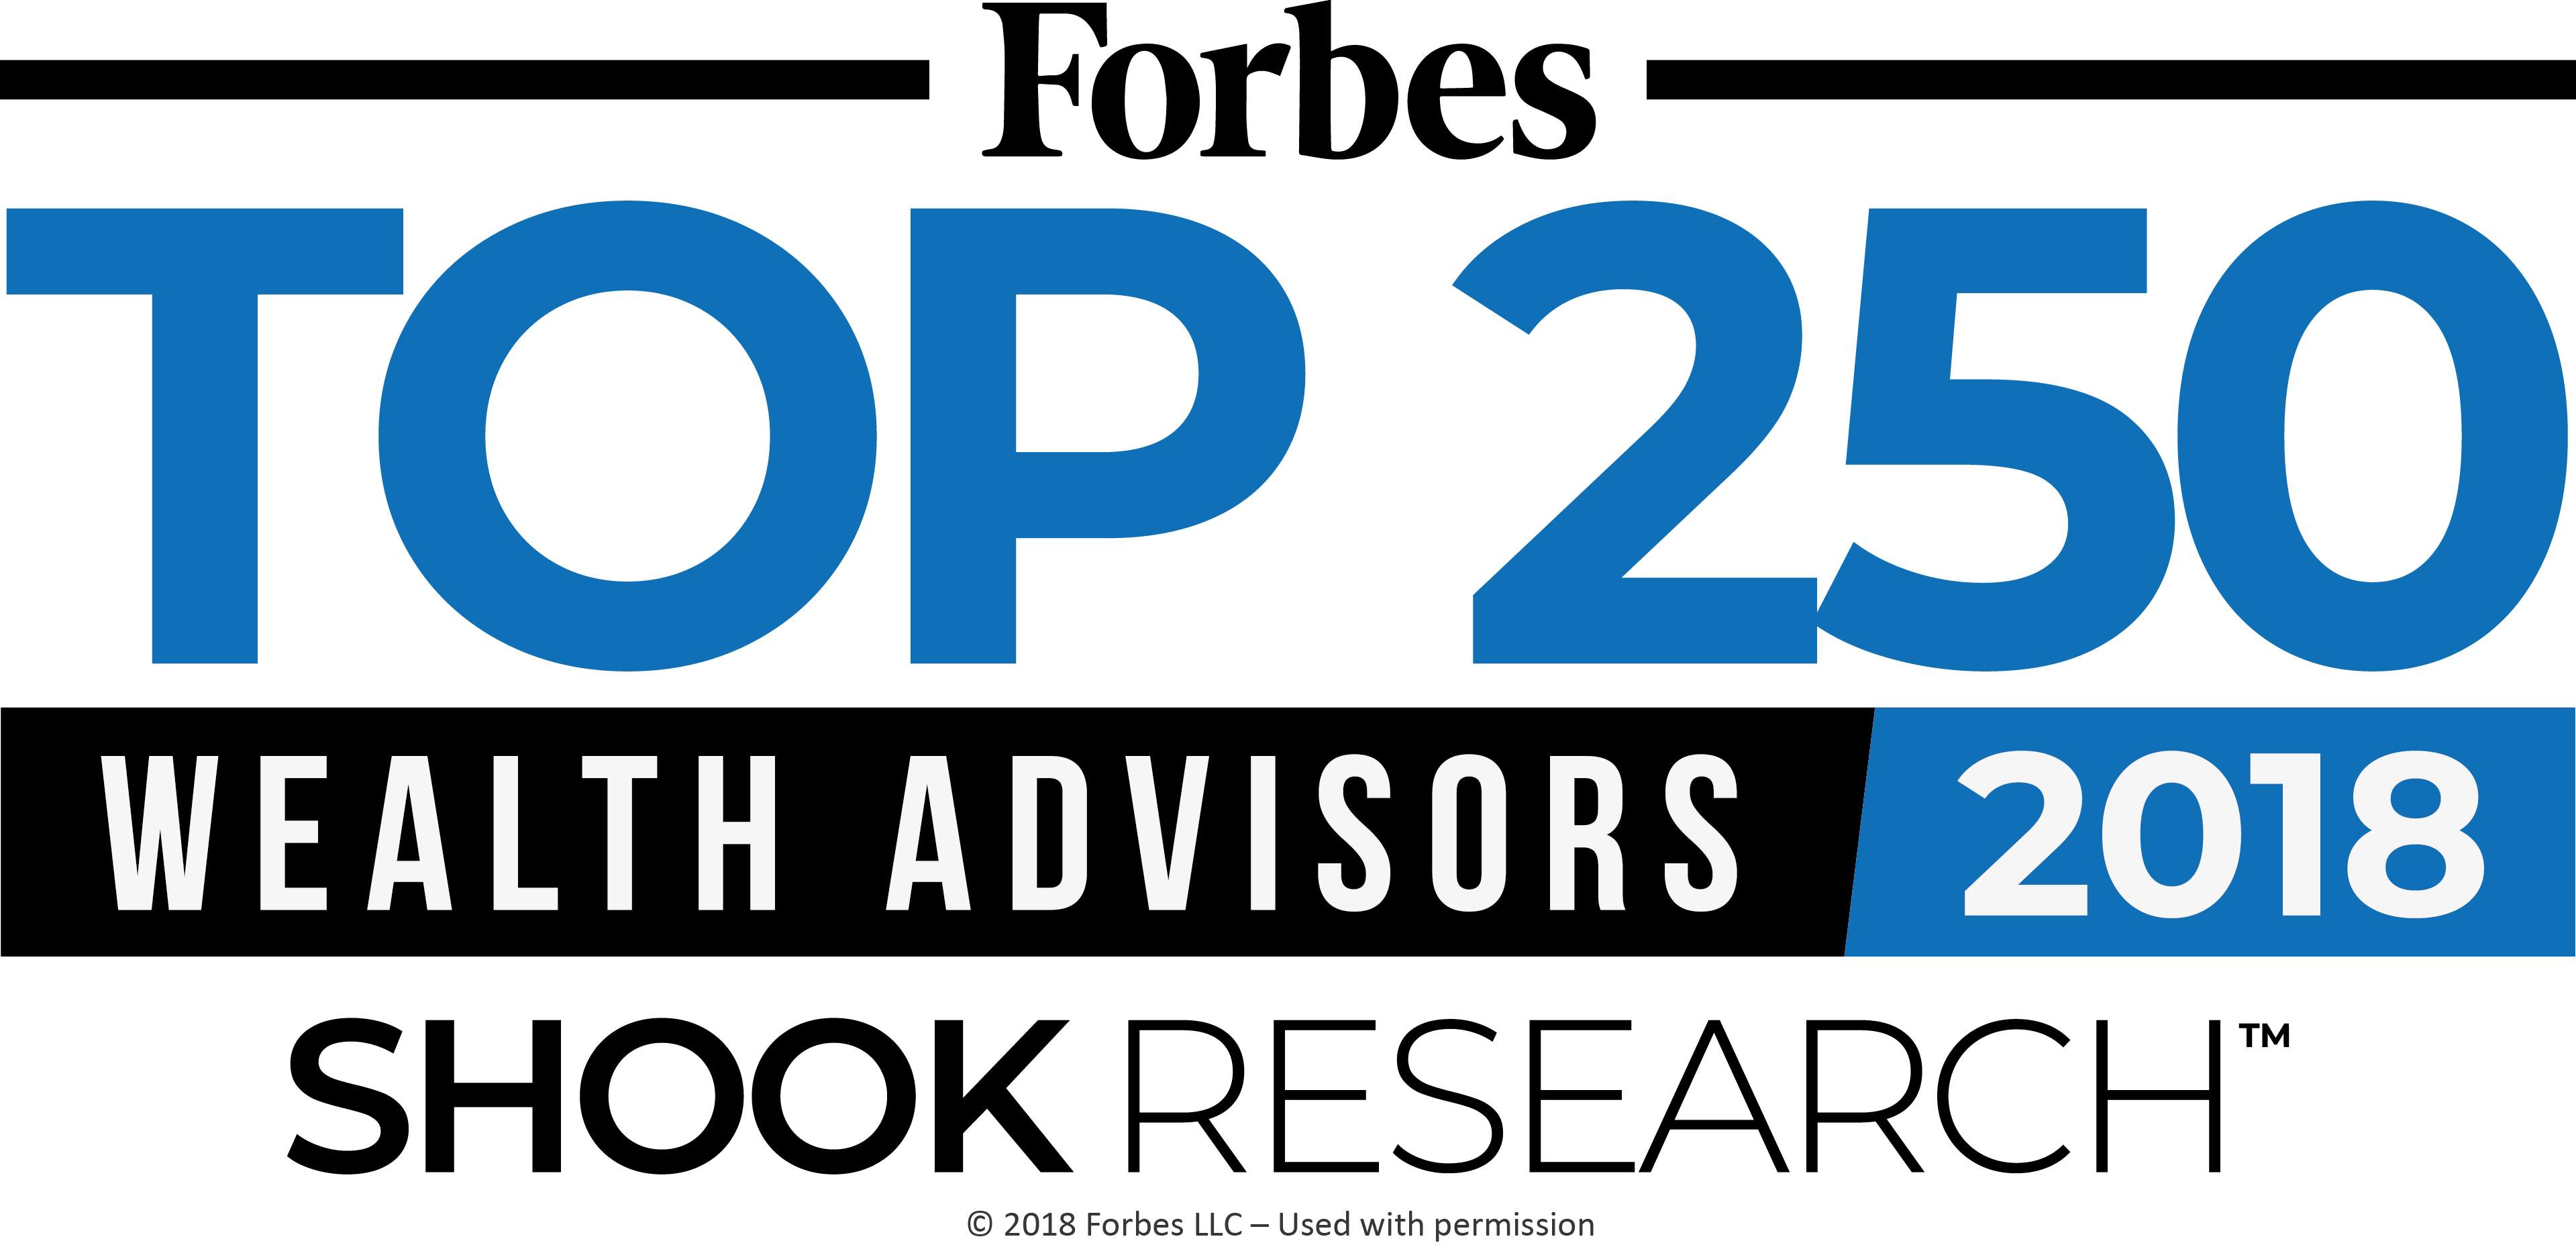 Greg Smith & Simon Hamilton Recognized by Forbes as two of America's Top Wealth Advisors for 2018 Thumbnail